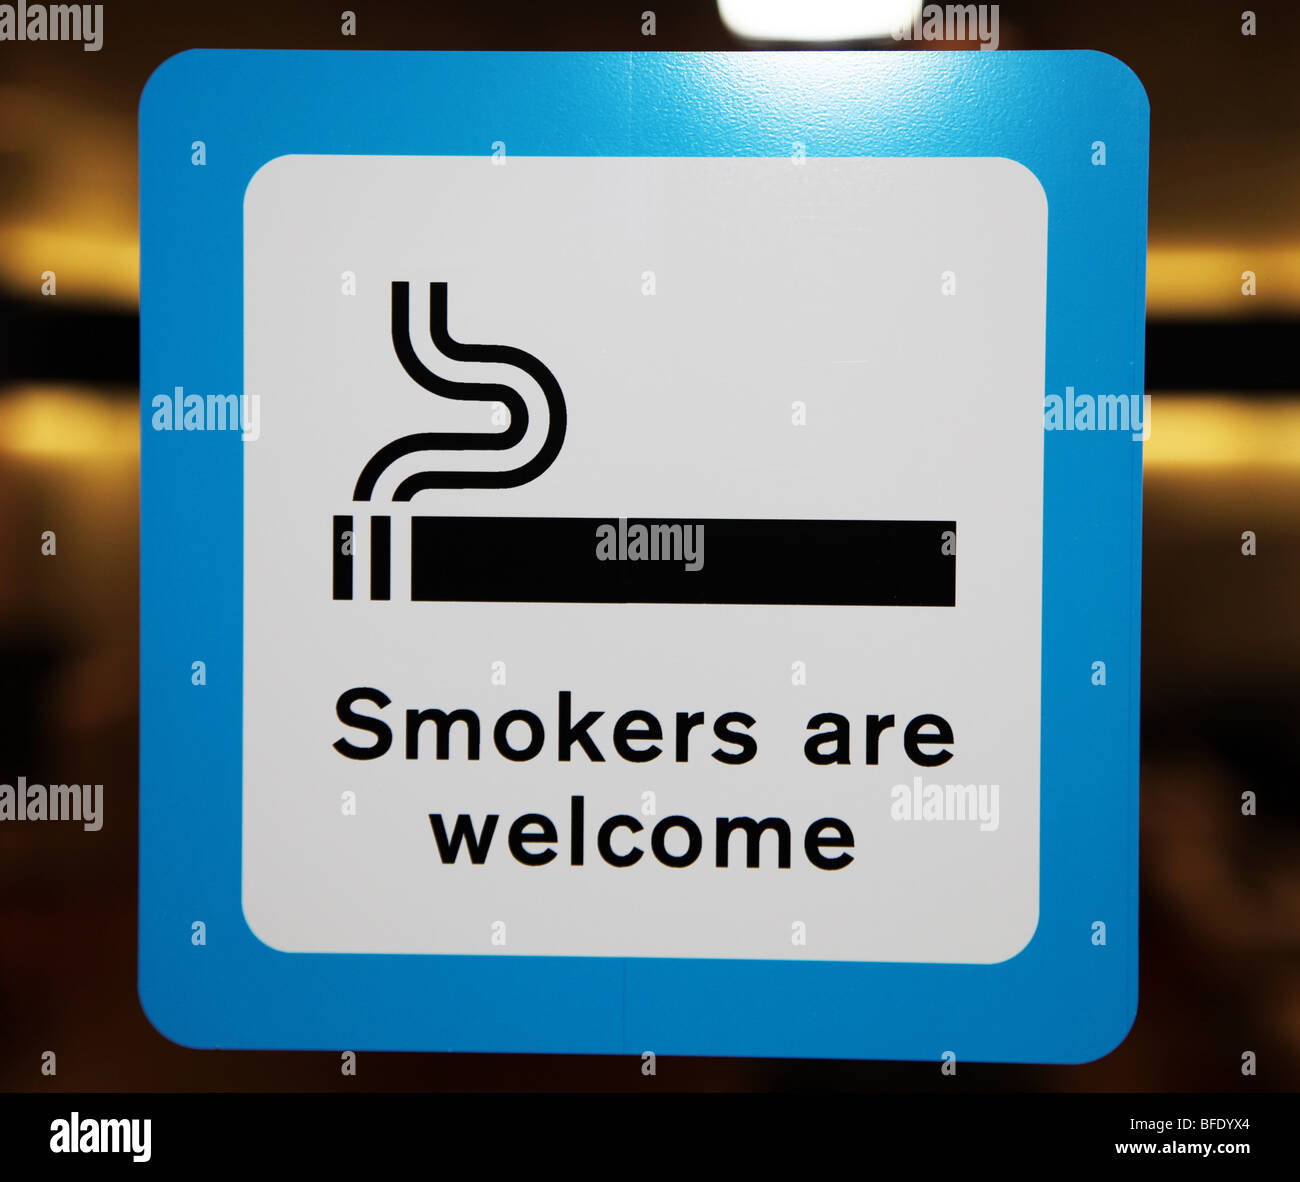 Image result for Smokers welcome  sign